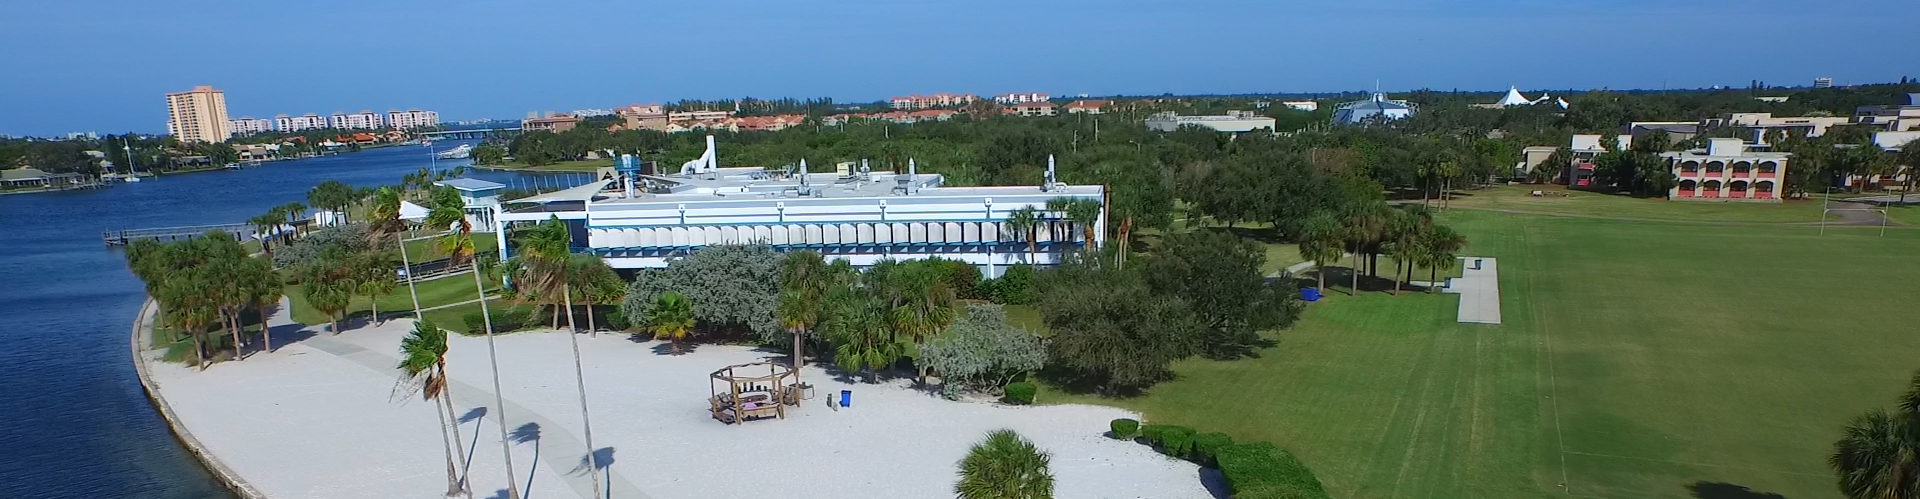 Eckerd College - Mediation Training Institute - South beach aerial